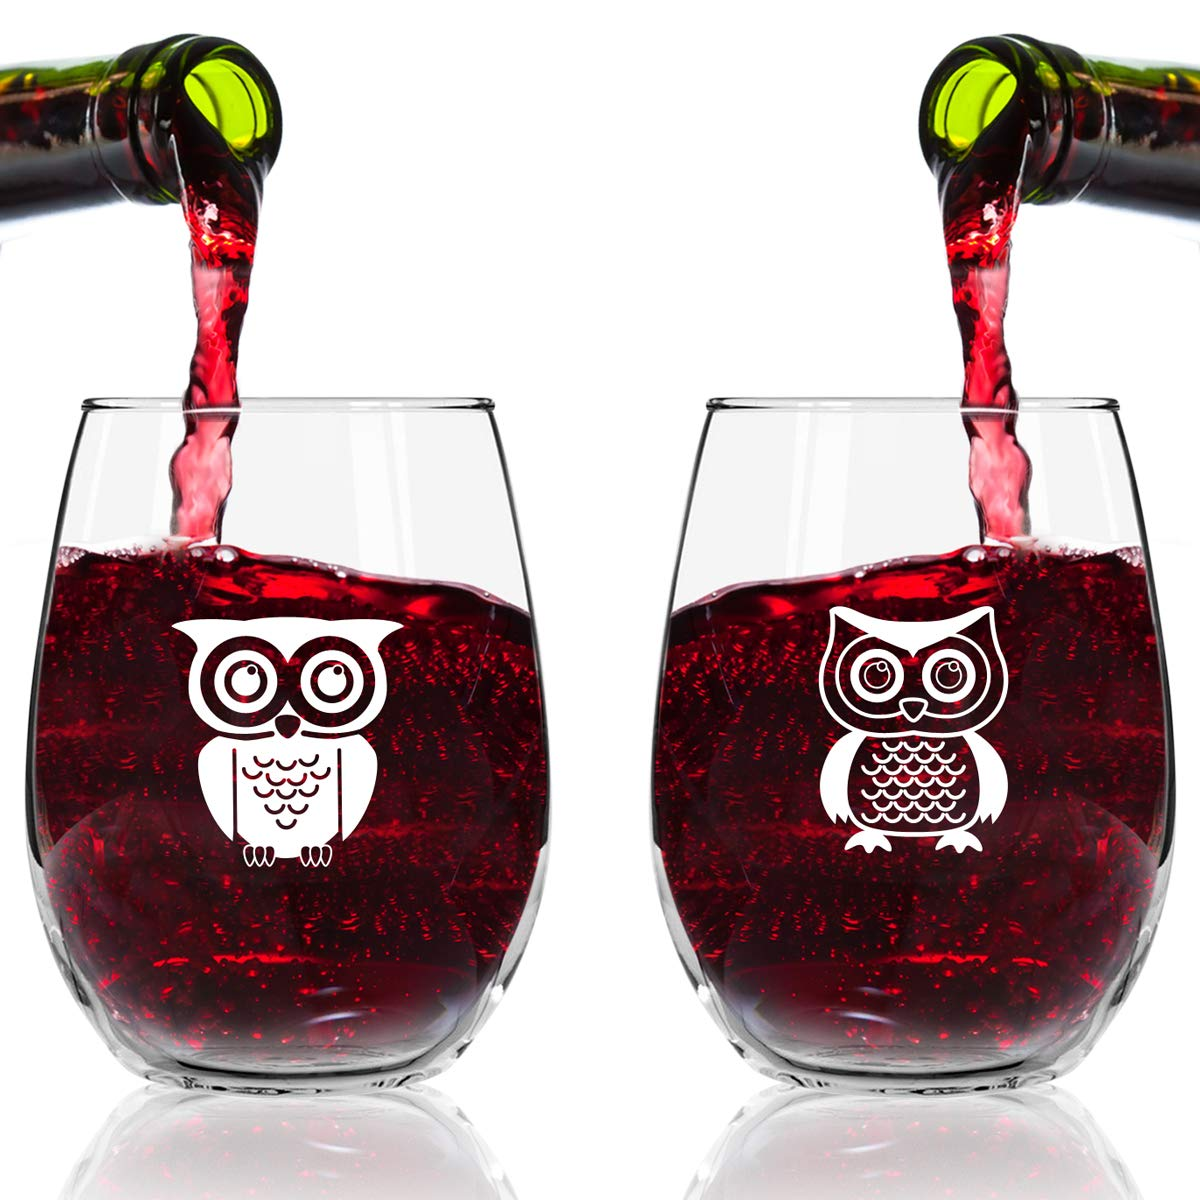 Her Buzzed Infoxicated Quality Made in USA Skunked and Slothed Animal Pack Set of 4 Glasses Funny Stemless Wine Glass Set Novelty Glasses with Cute Sayings for Women